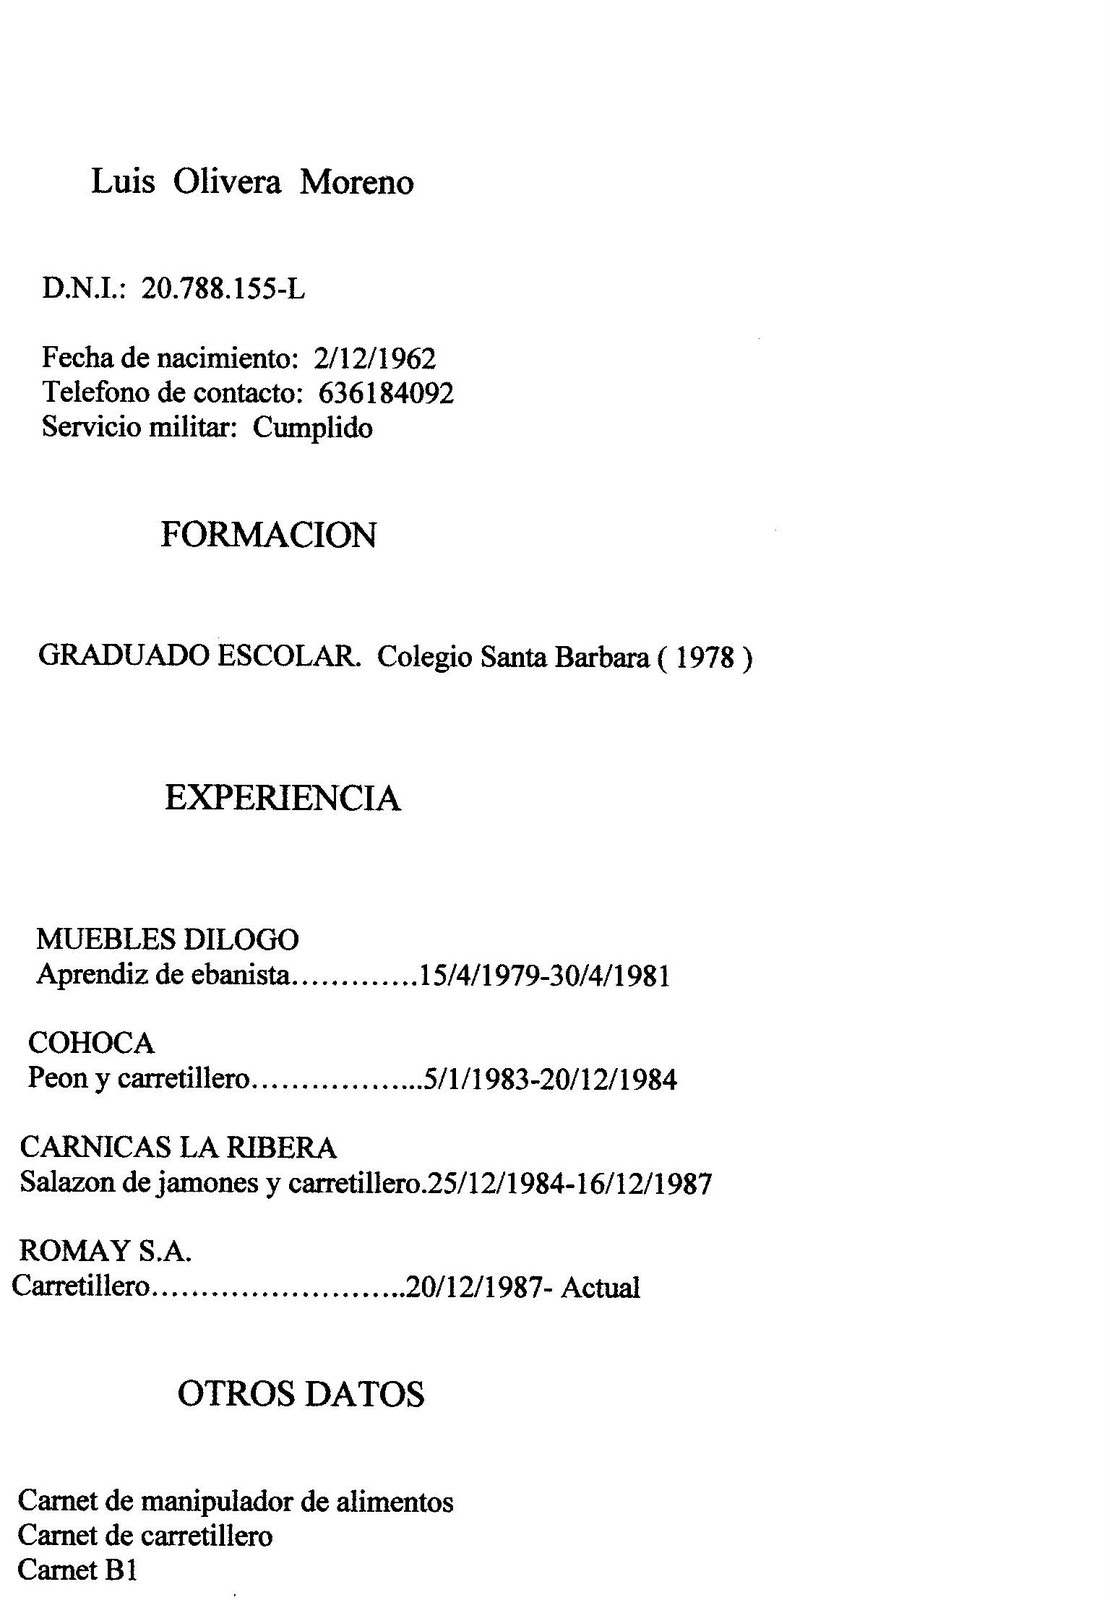 Another Curriculum Vitae Formato Pdf Para Llenar Descargar Funny